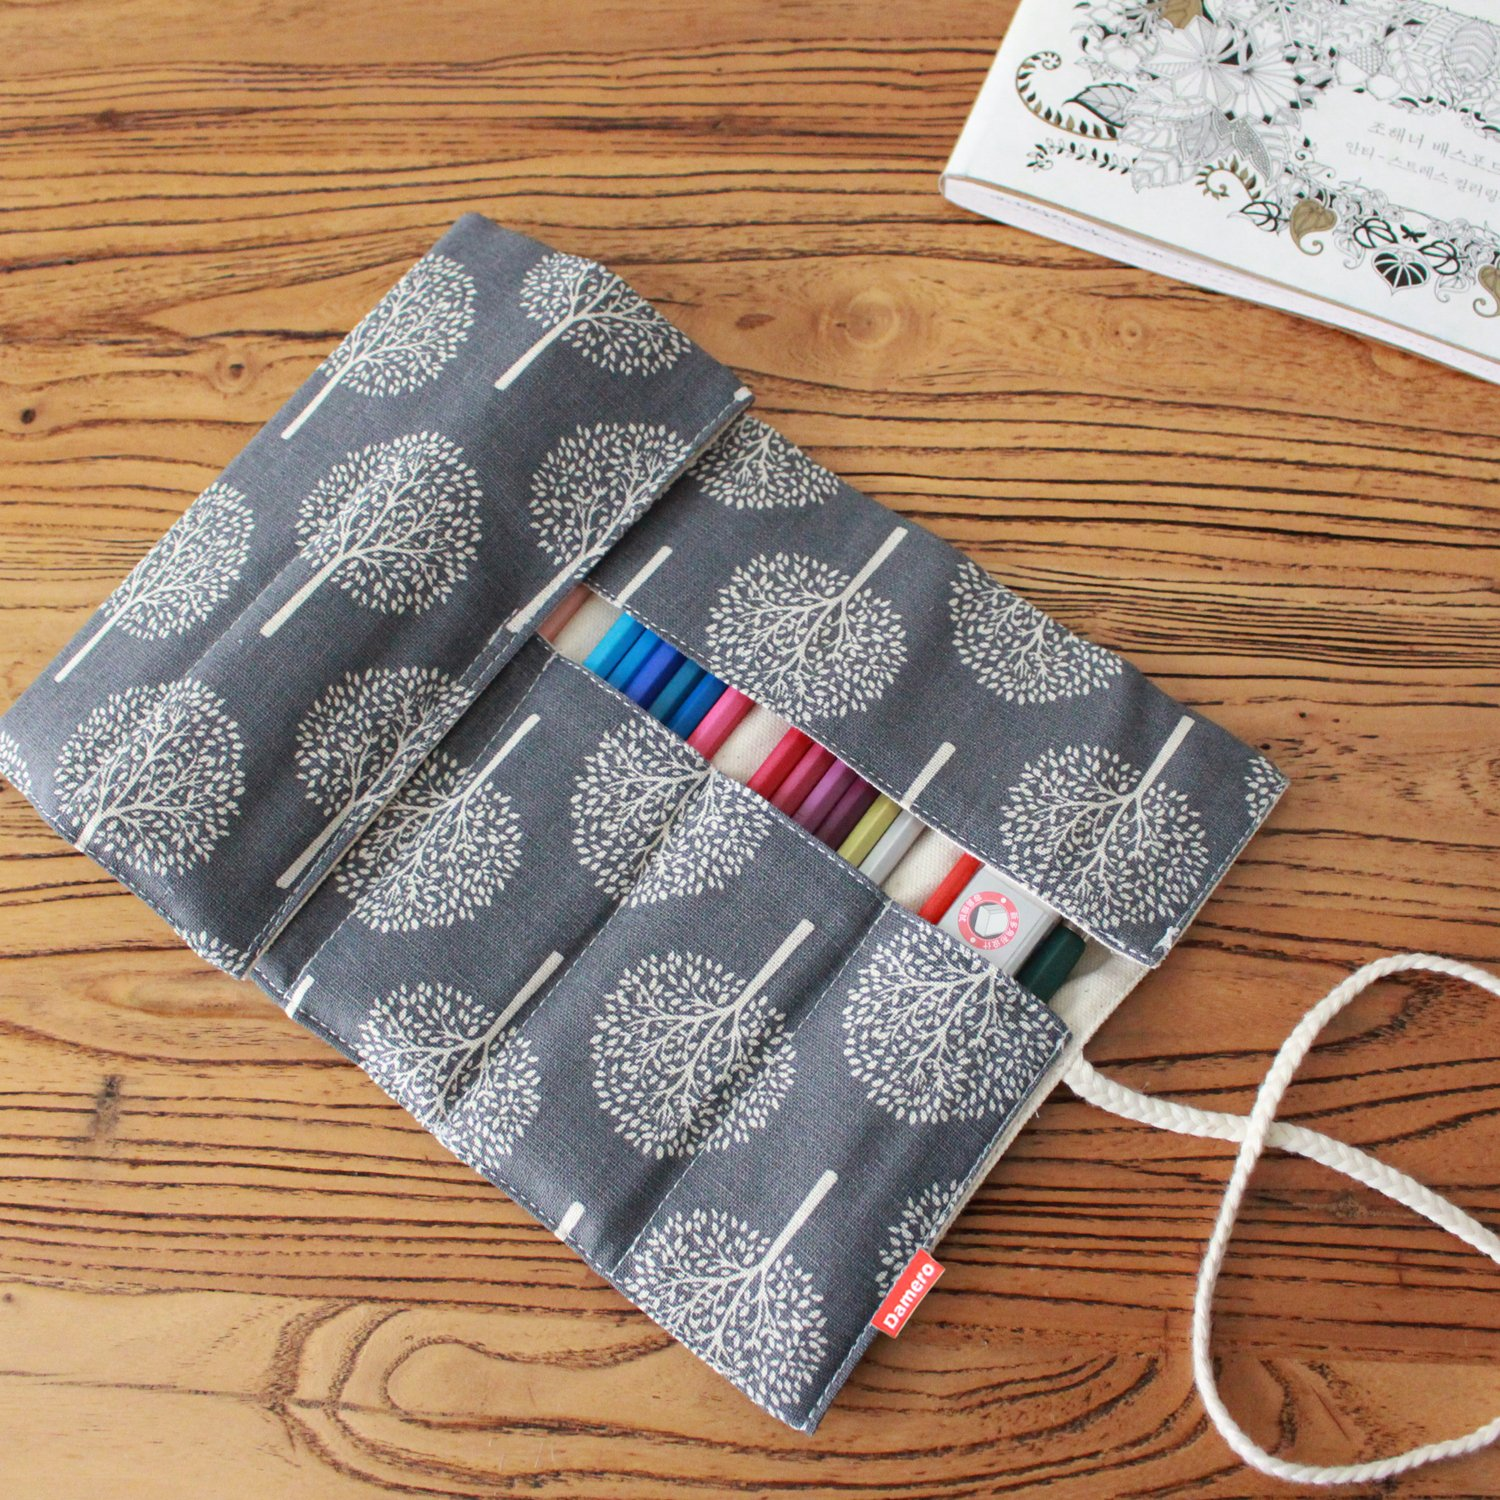 Gracelife Dragon Pattern Colored Pencil Wrap Chinese Style Canvas Pencil Roll up Case with Zipper Pouch Portable Coloring Pencil Holder Organizer